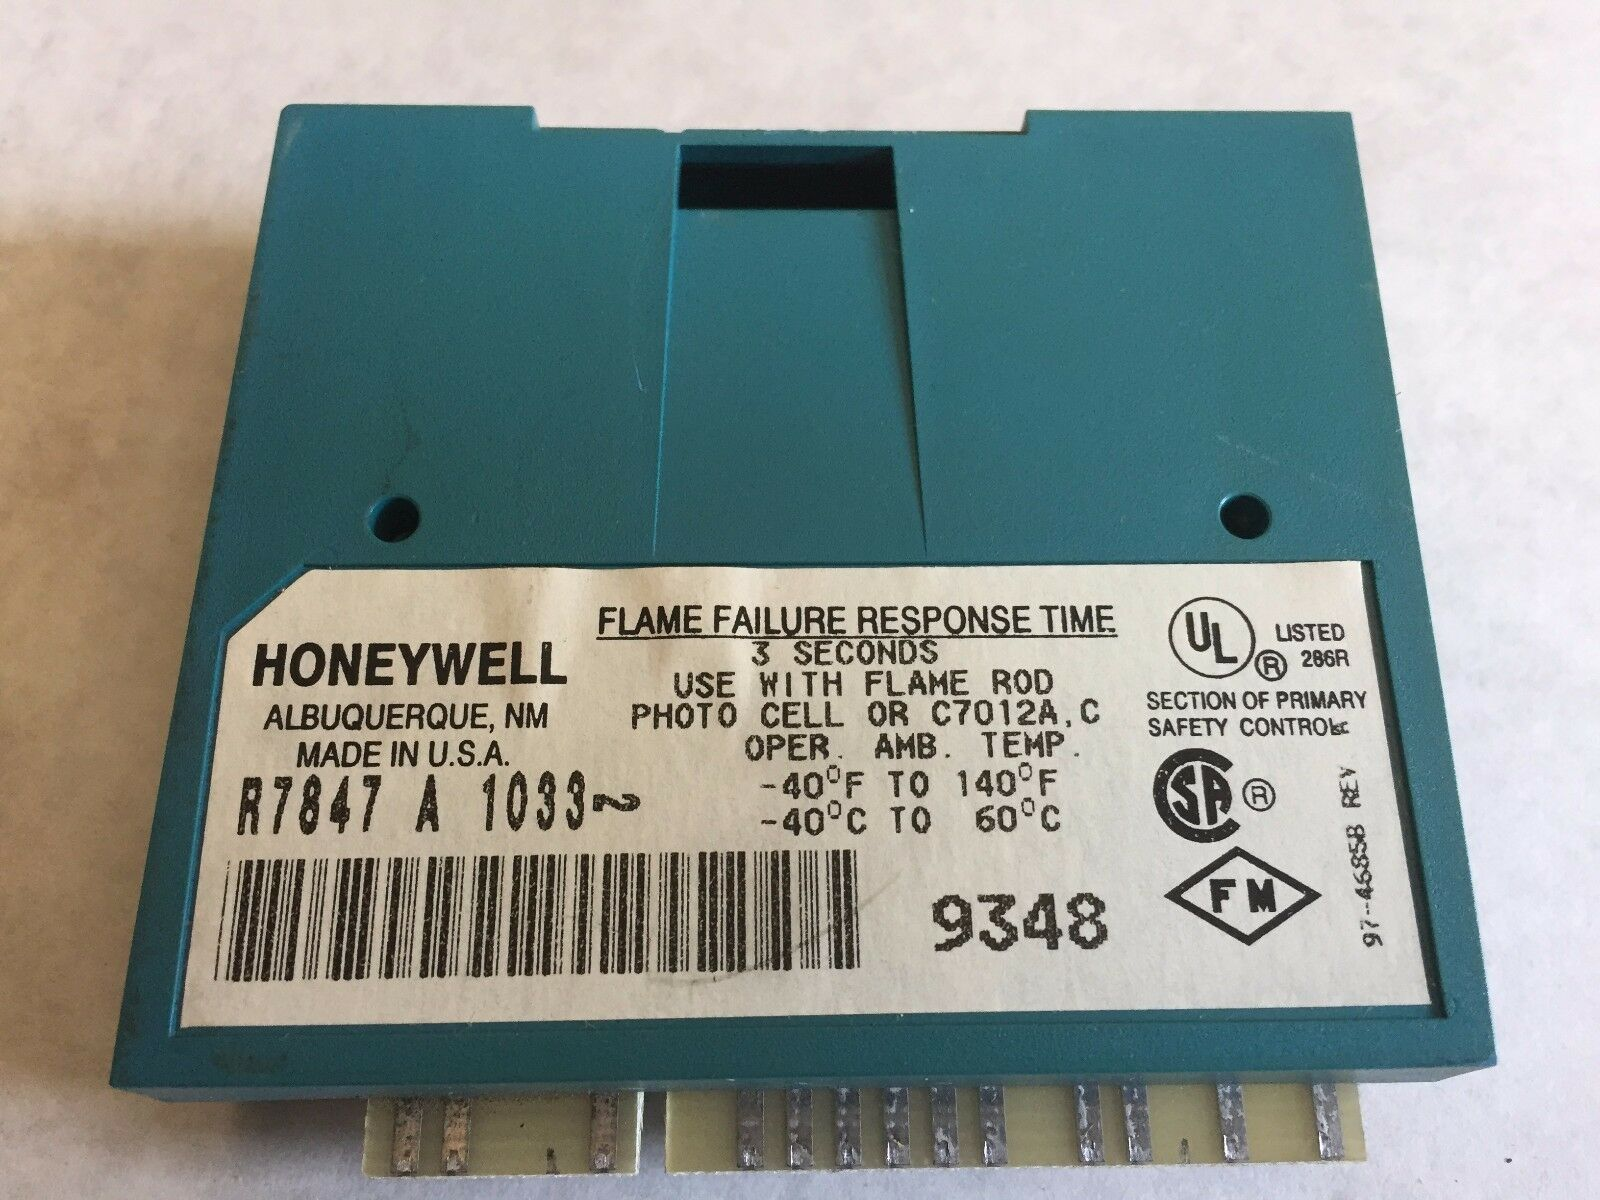 Honeywell R7847 A 1033 Rectification Flame Amplifeir Ebay Emerson M055pwcsw 0283 Goodman 0131m00112 Furnace Blower Motor